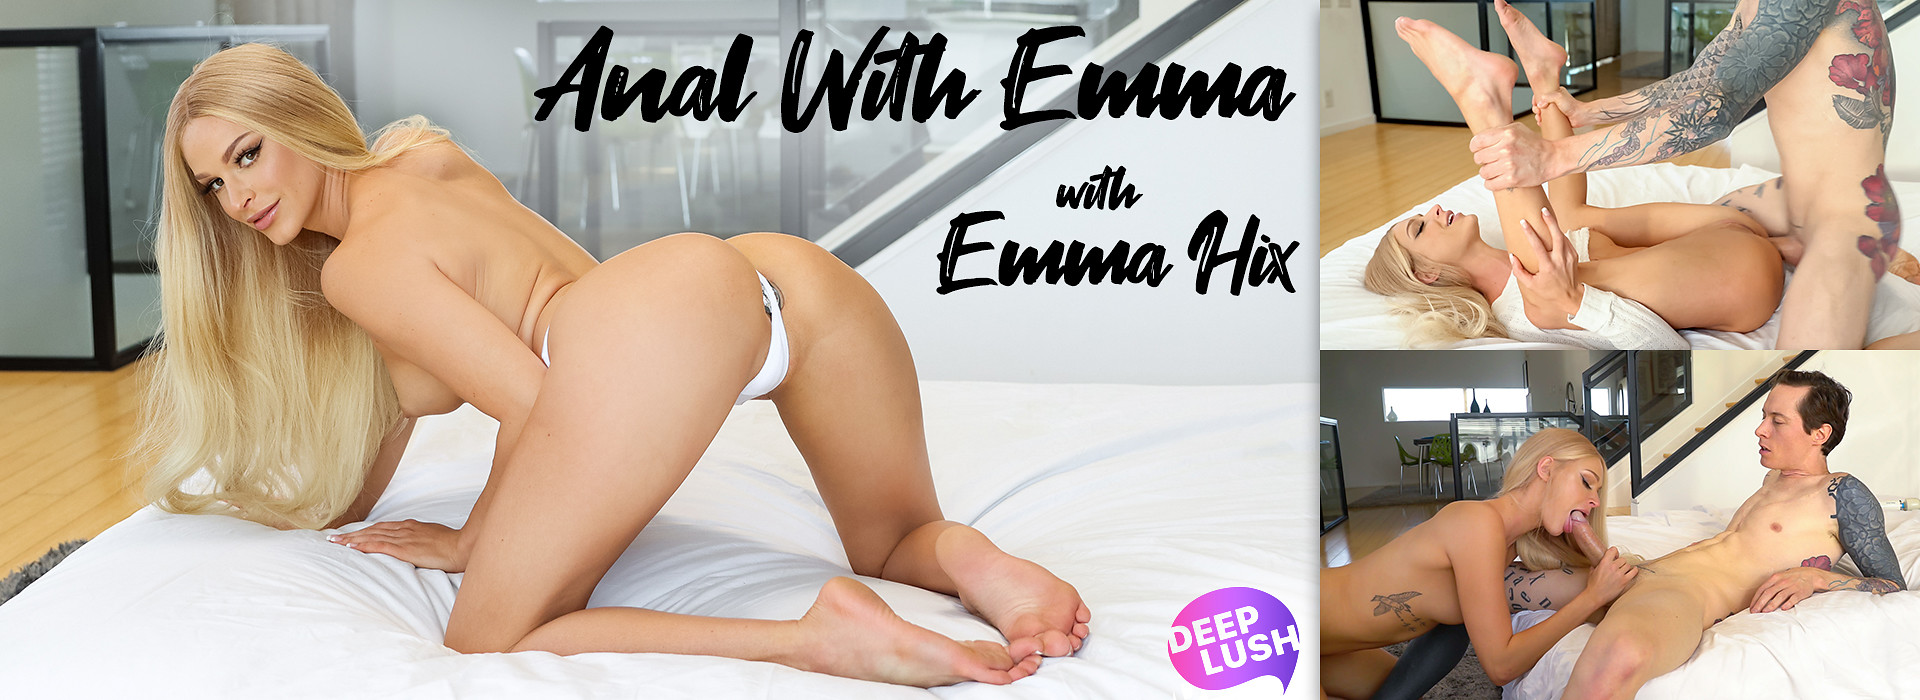 Anal With Emma